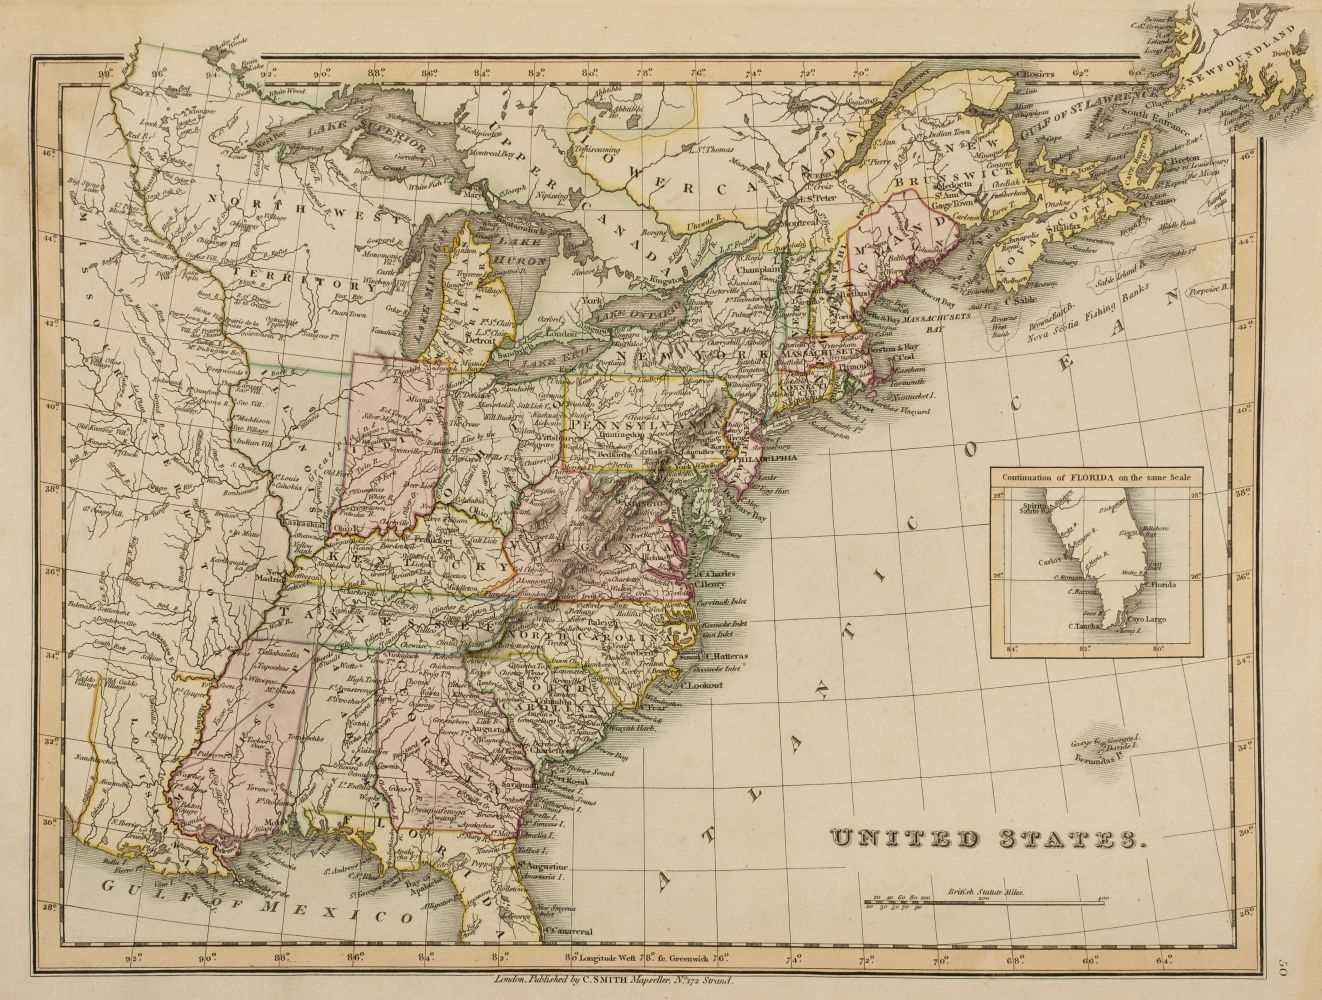 Lot 10 - Smith (Charles). Smith's New General Atlas containing Distinct Maps, 1830